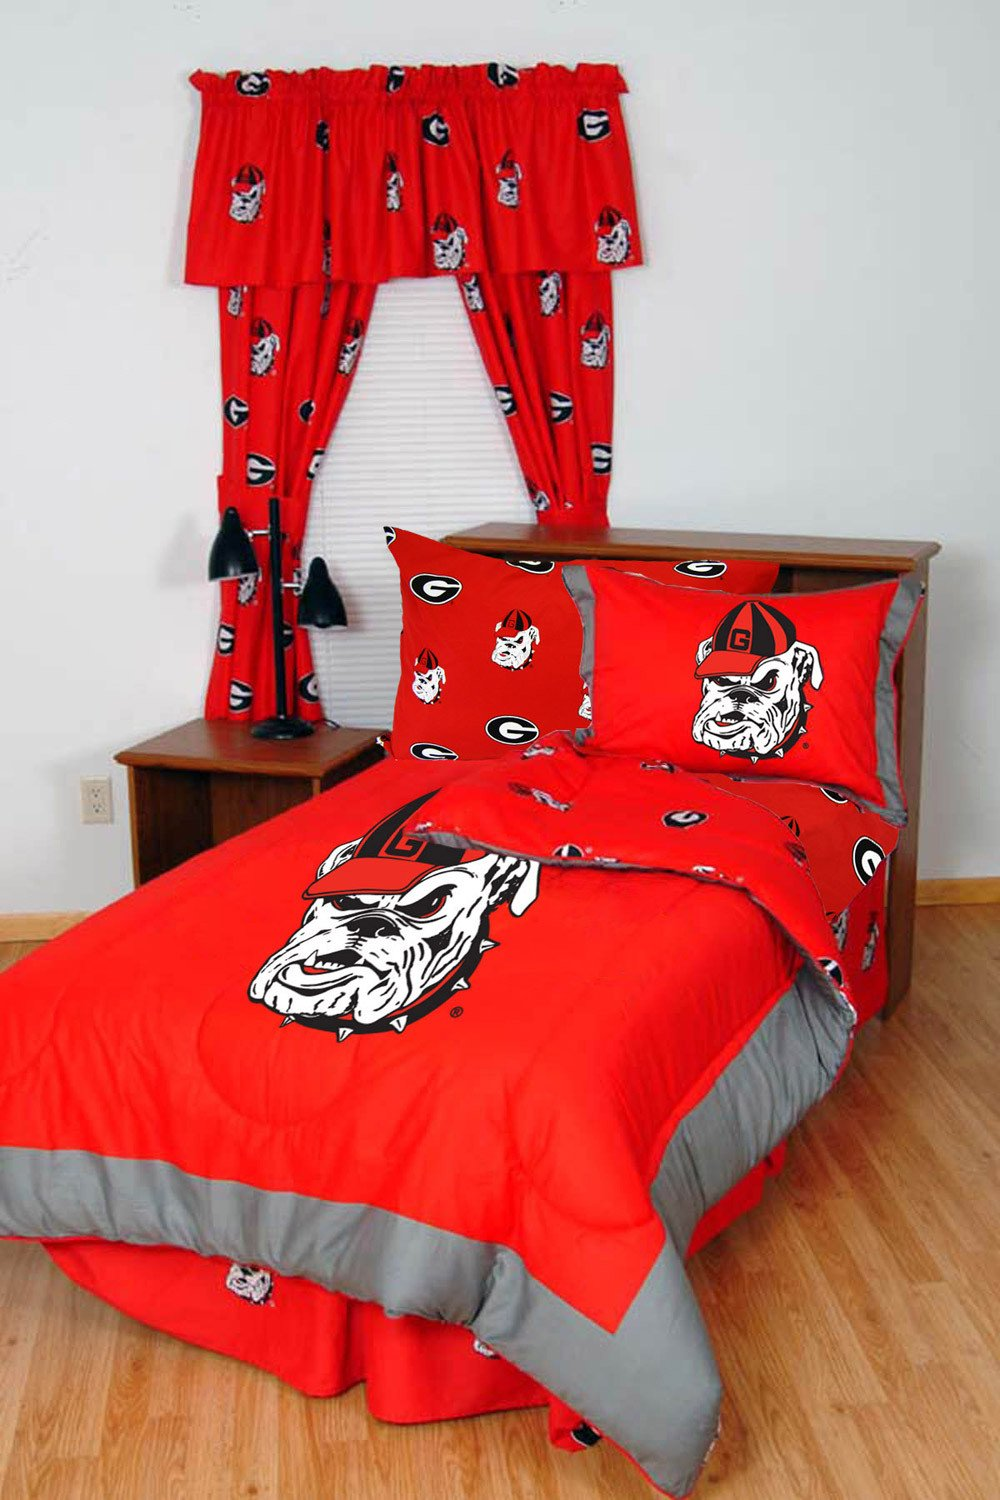 Georgia | College | Sheet | Cover | Color | King | Team | Bed | Bag